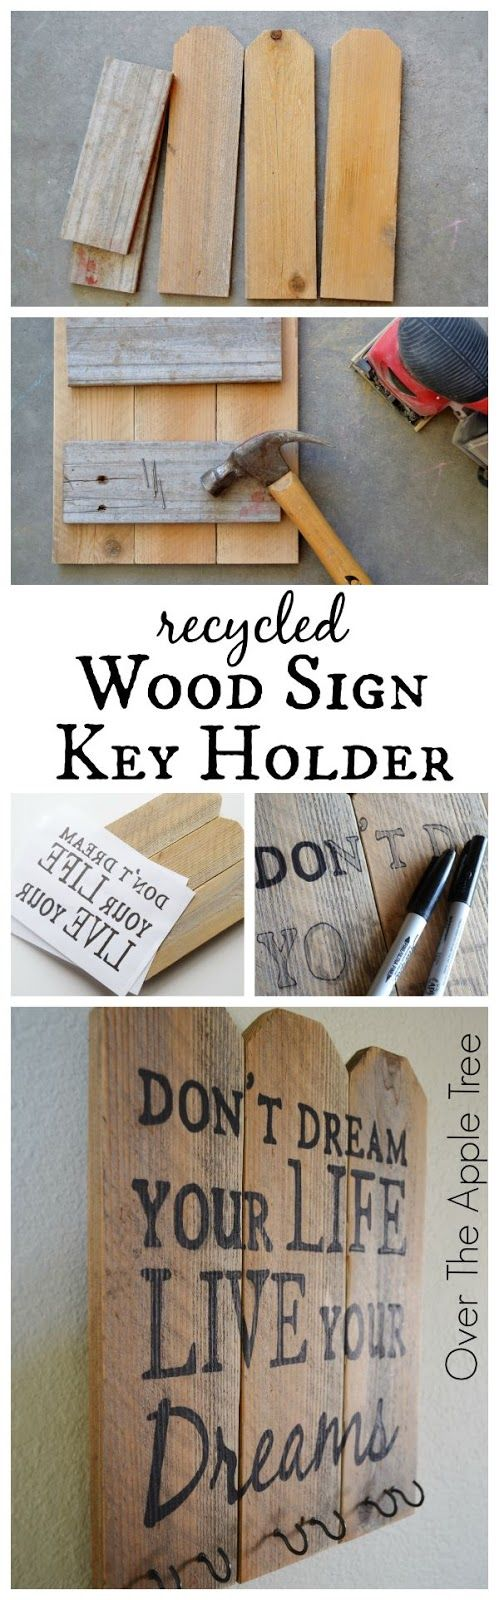 Recycled Wood Sign Key Holder- Over The Apple Tree